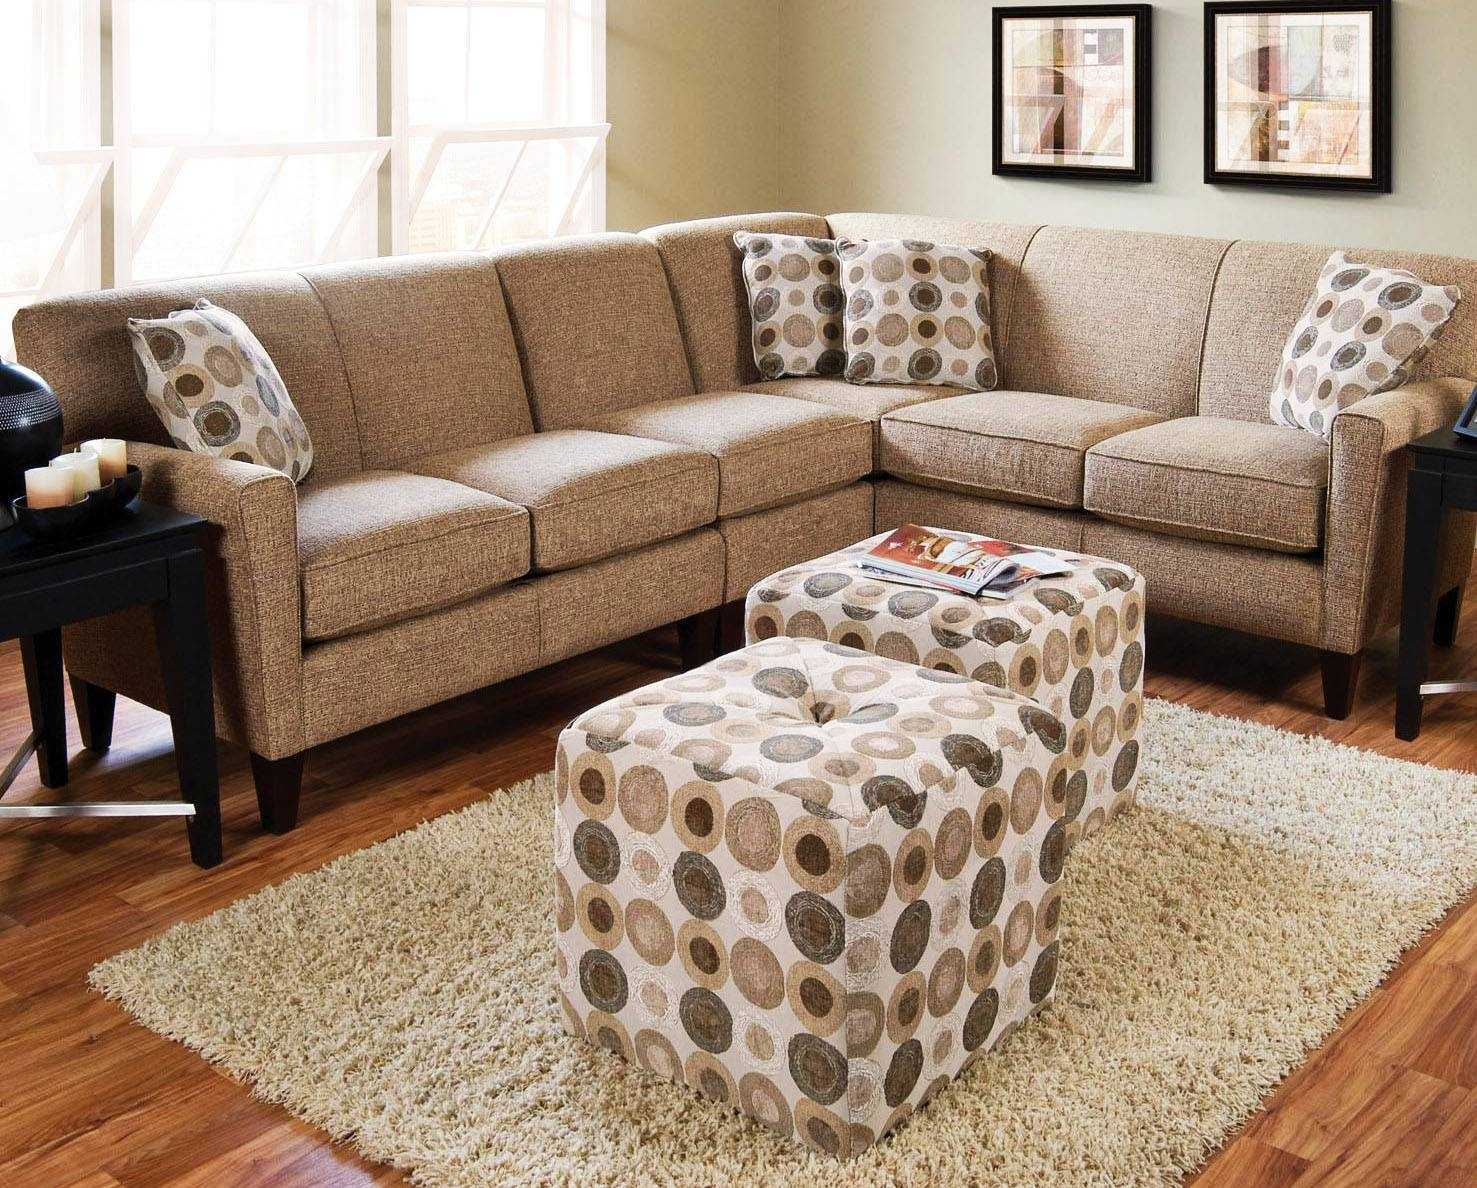 Sofas Center : Small Corner Sectional Couch Sofa Tiny And Sofas for Tiny Sofas (Image 19 of 30)